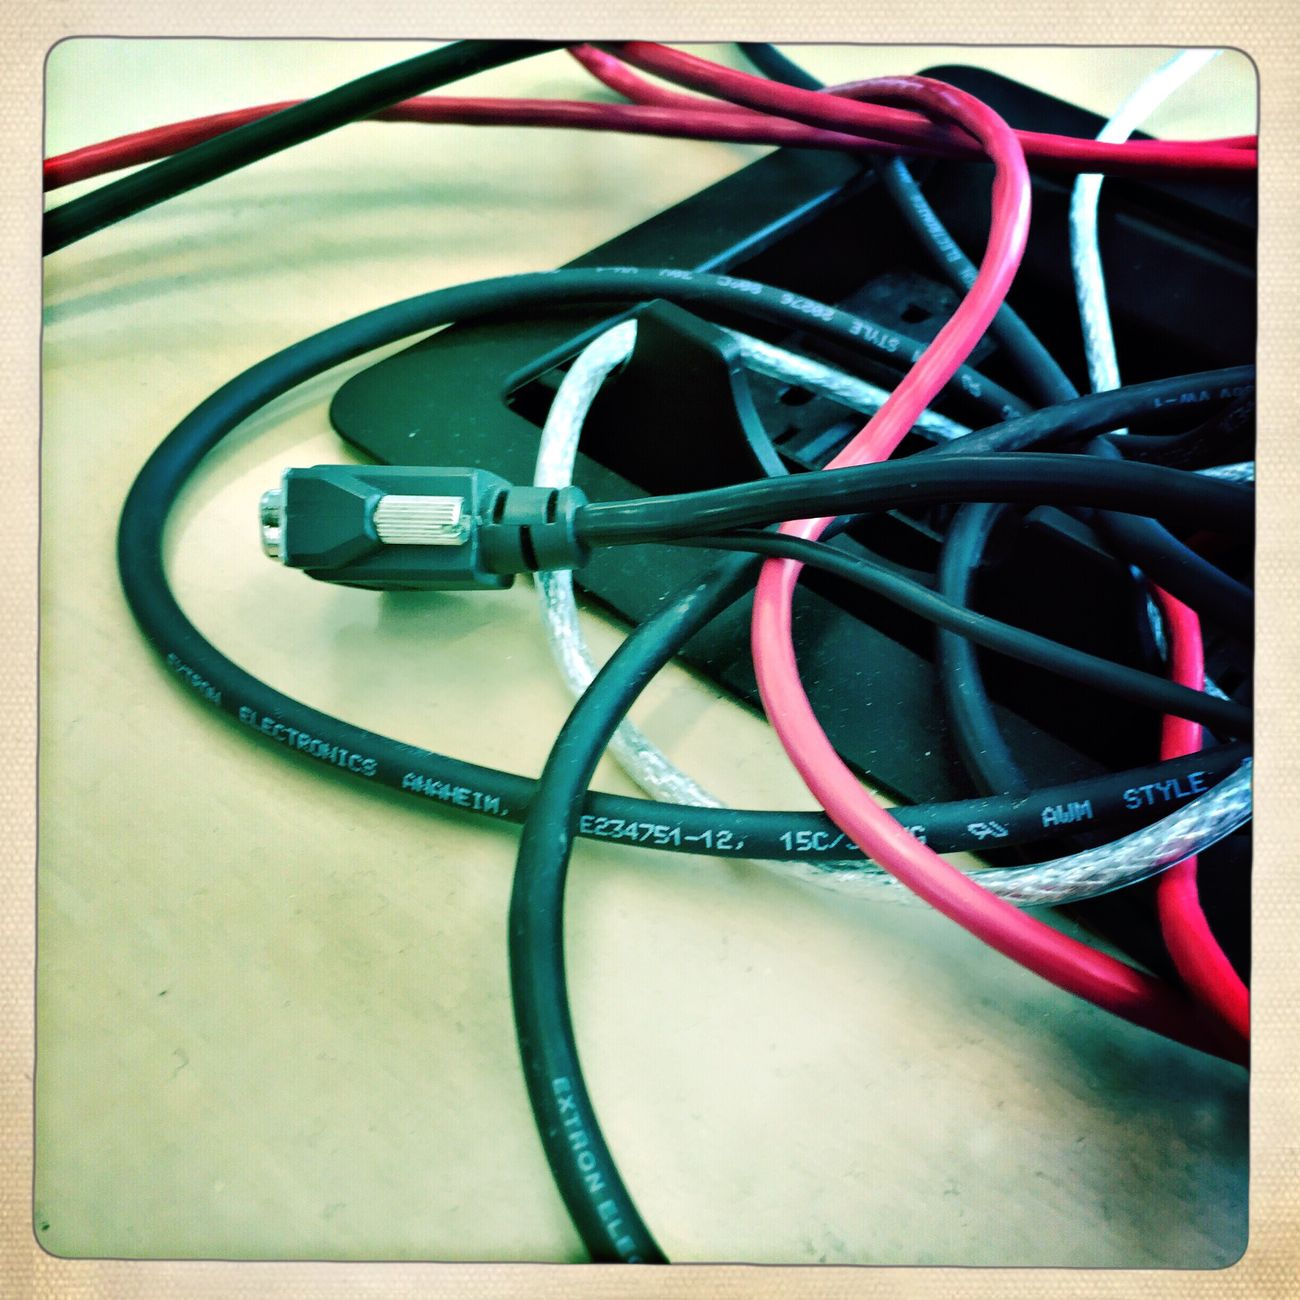 Digital Snake Pit Wires Cords Hipstamatic IPhoneography Iphone 6 Artistic Photo Photooftheday Work